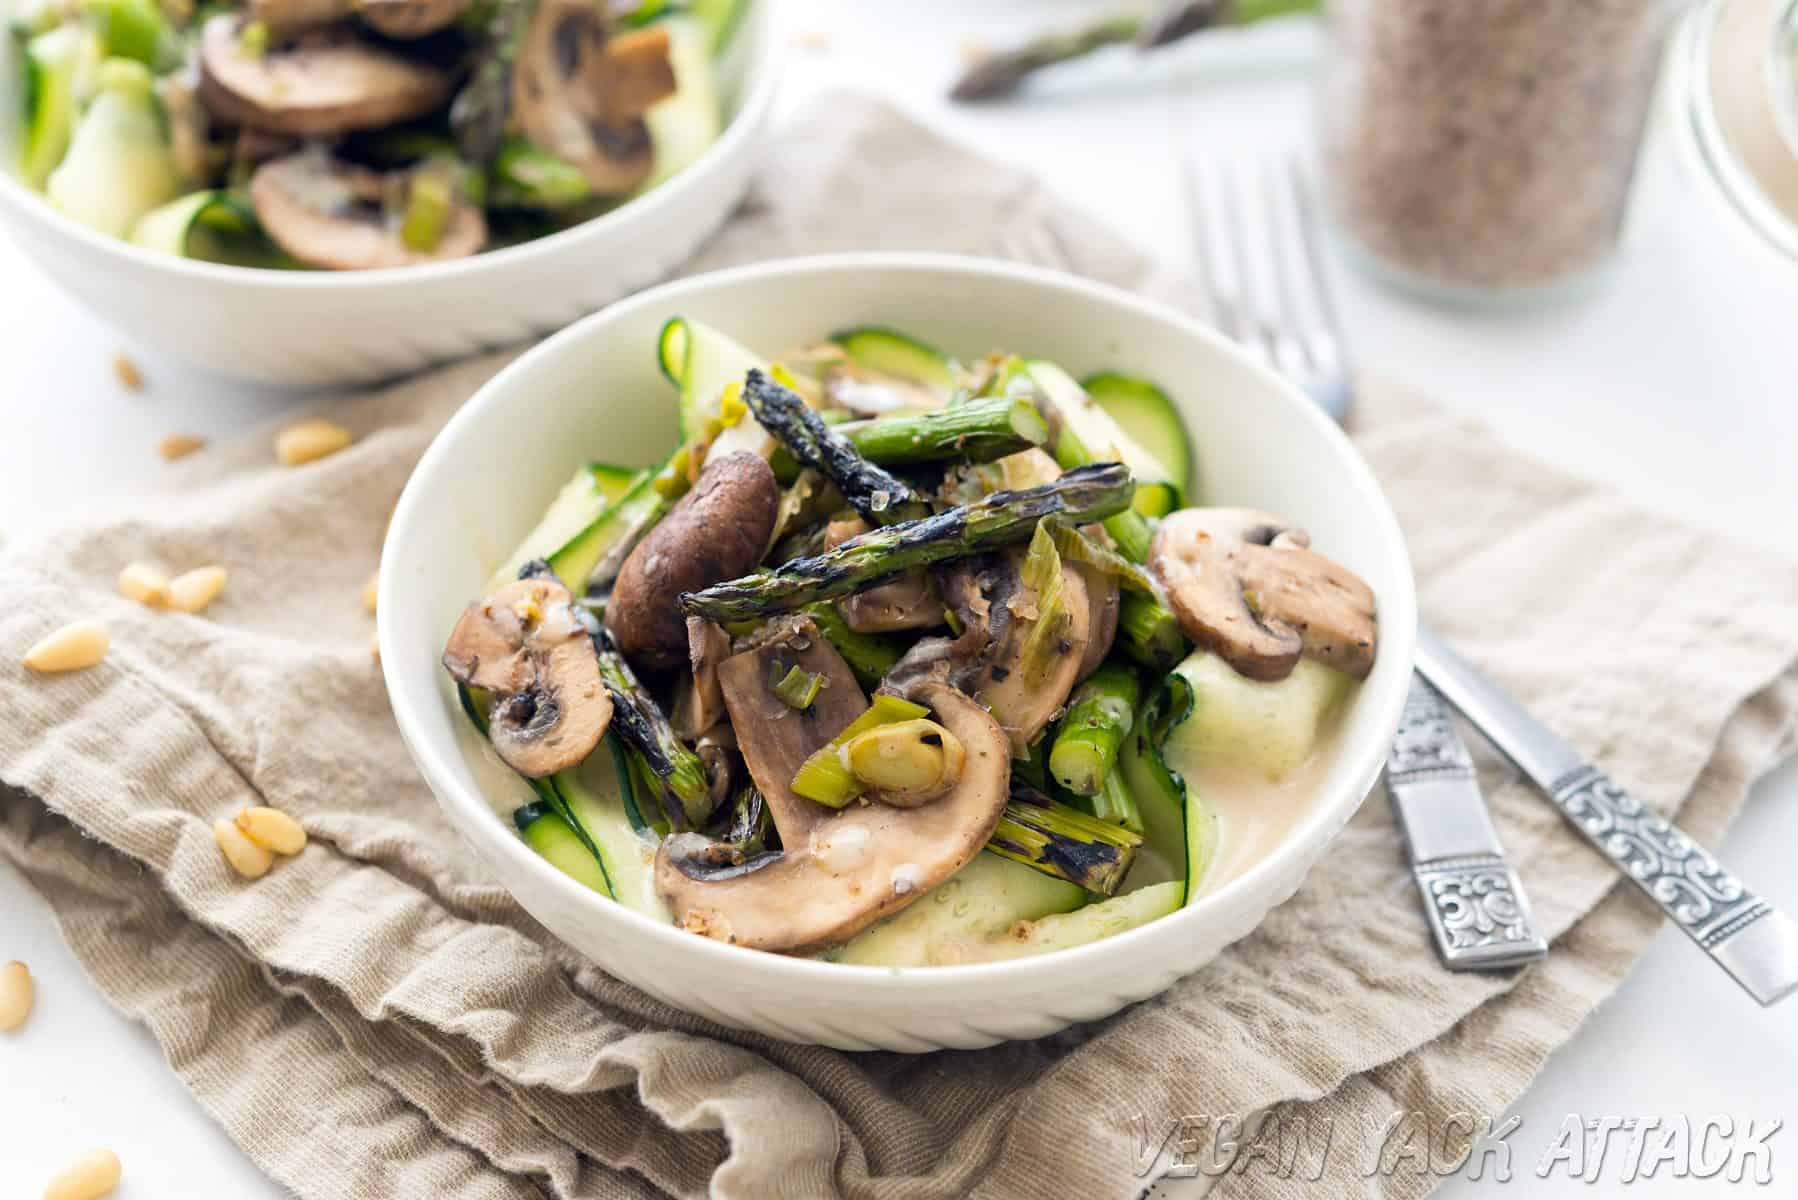 Grilled Asparagus with Cream Sauce and Zucchini Ribbons